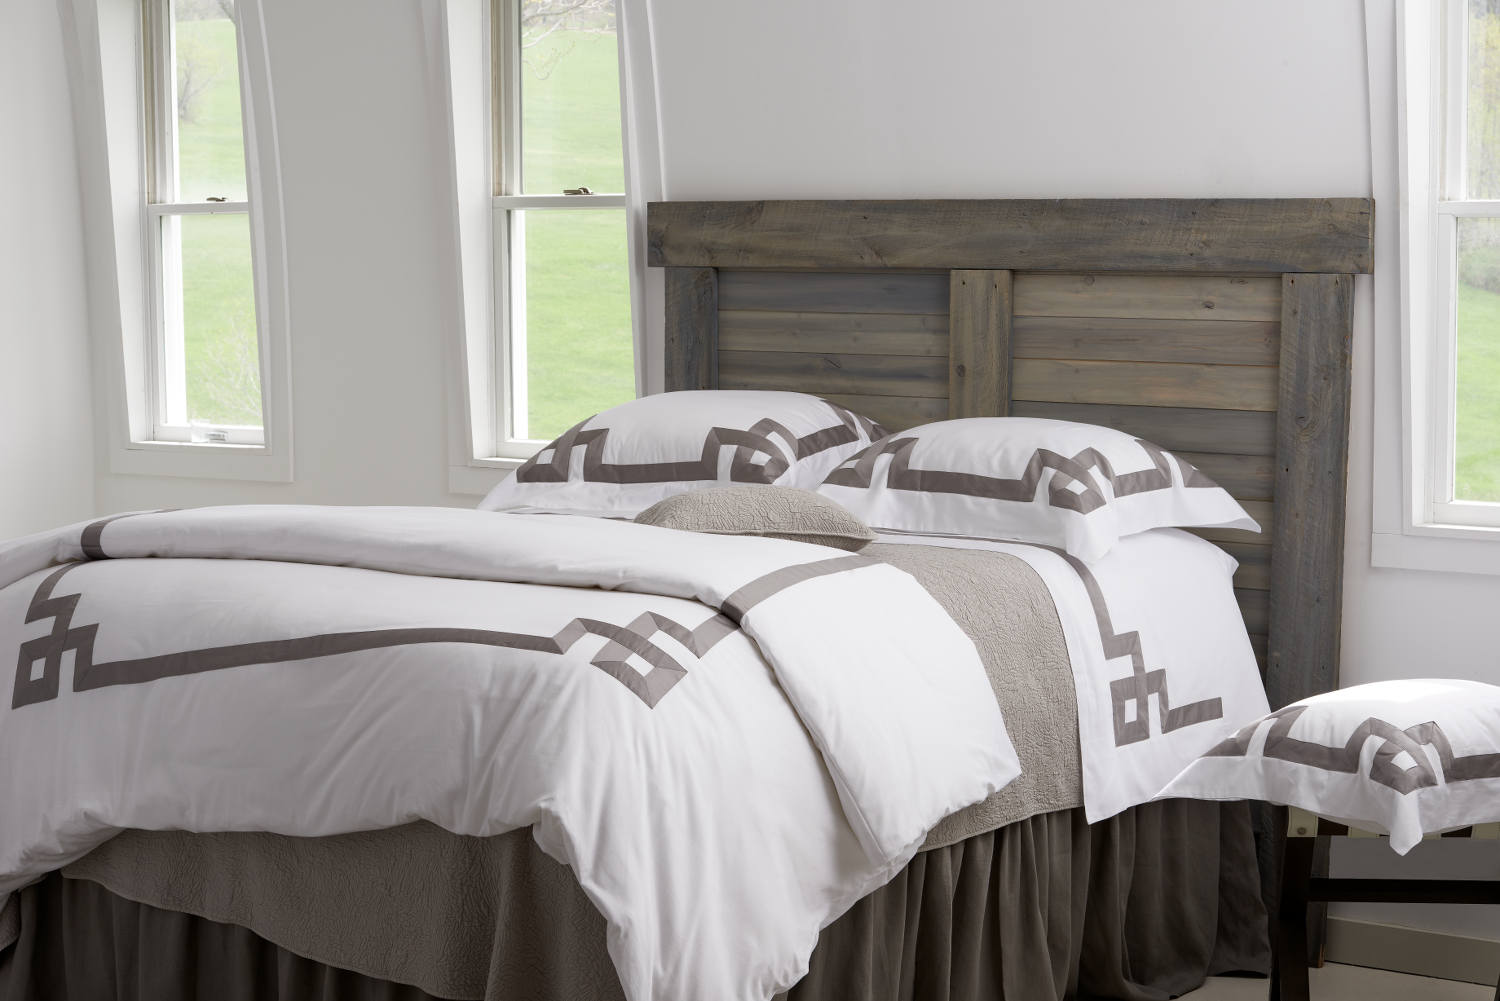 traditions linens milano bedding collection swatch available